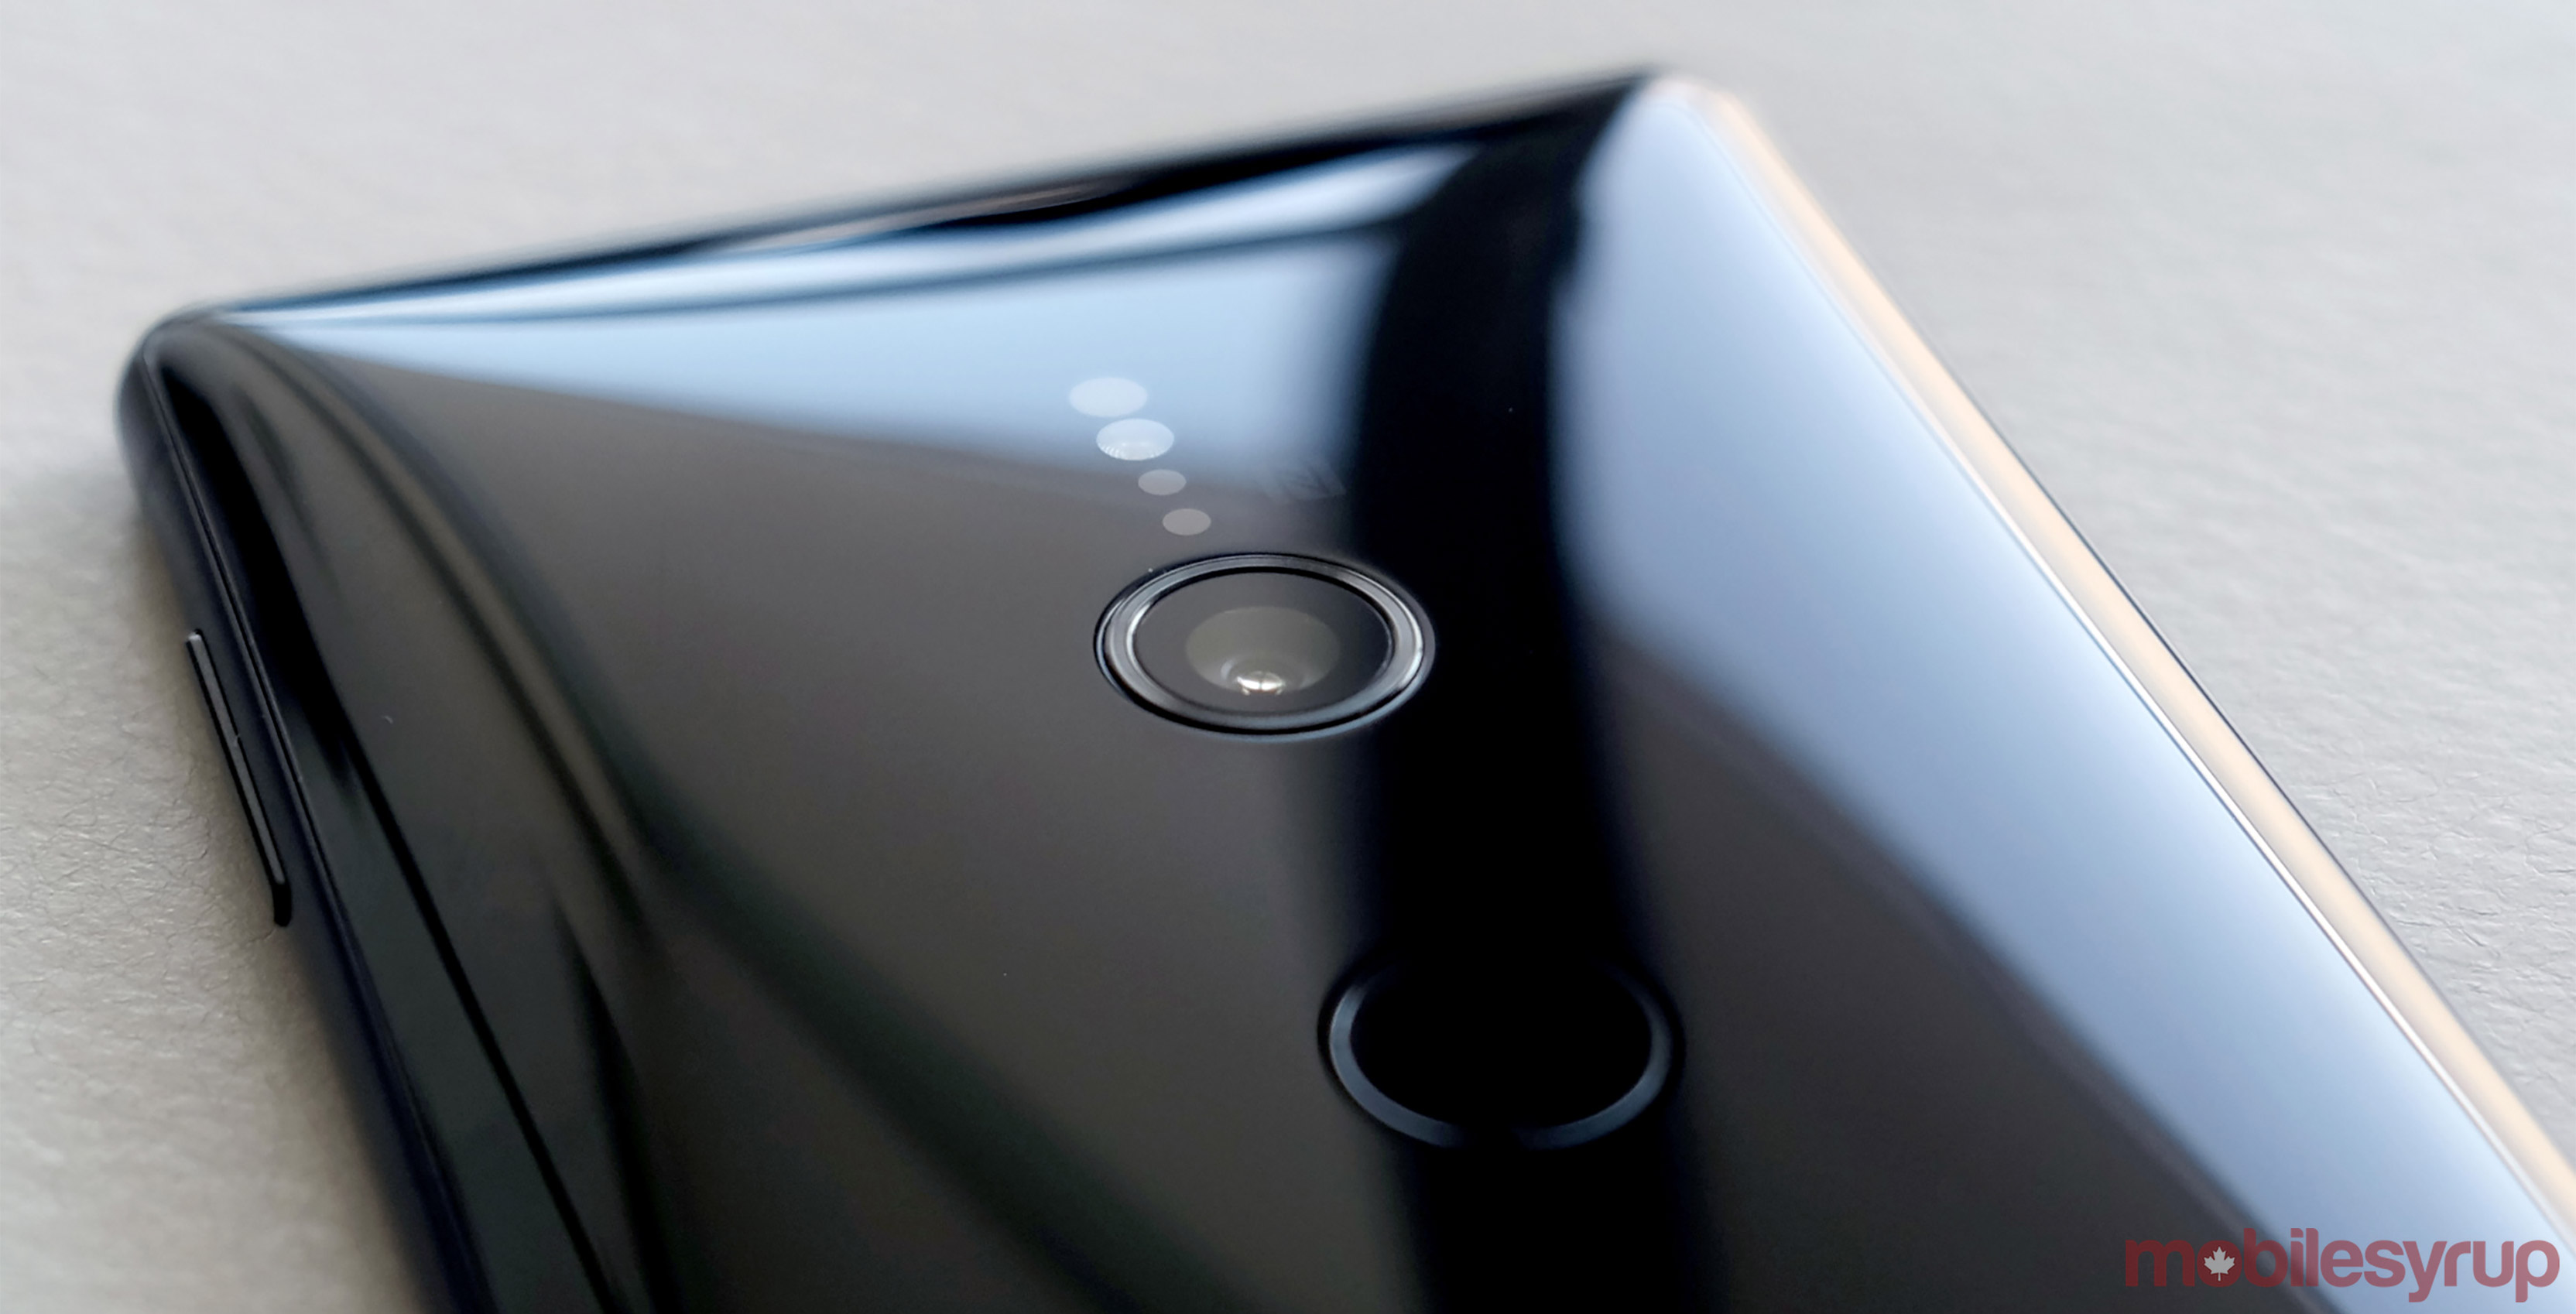 Sony Xperia XZ2 back